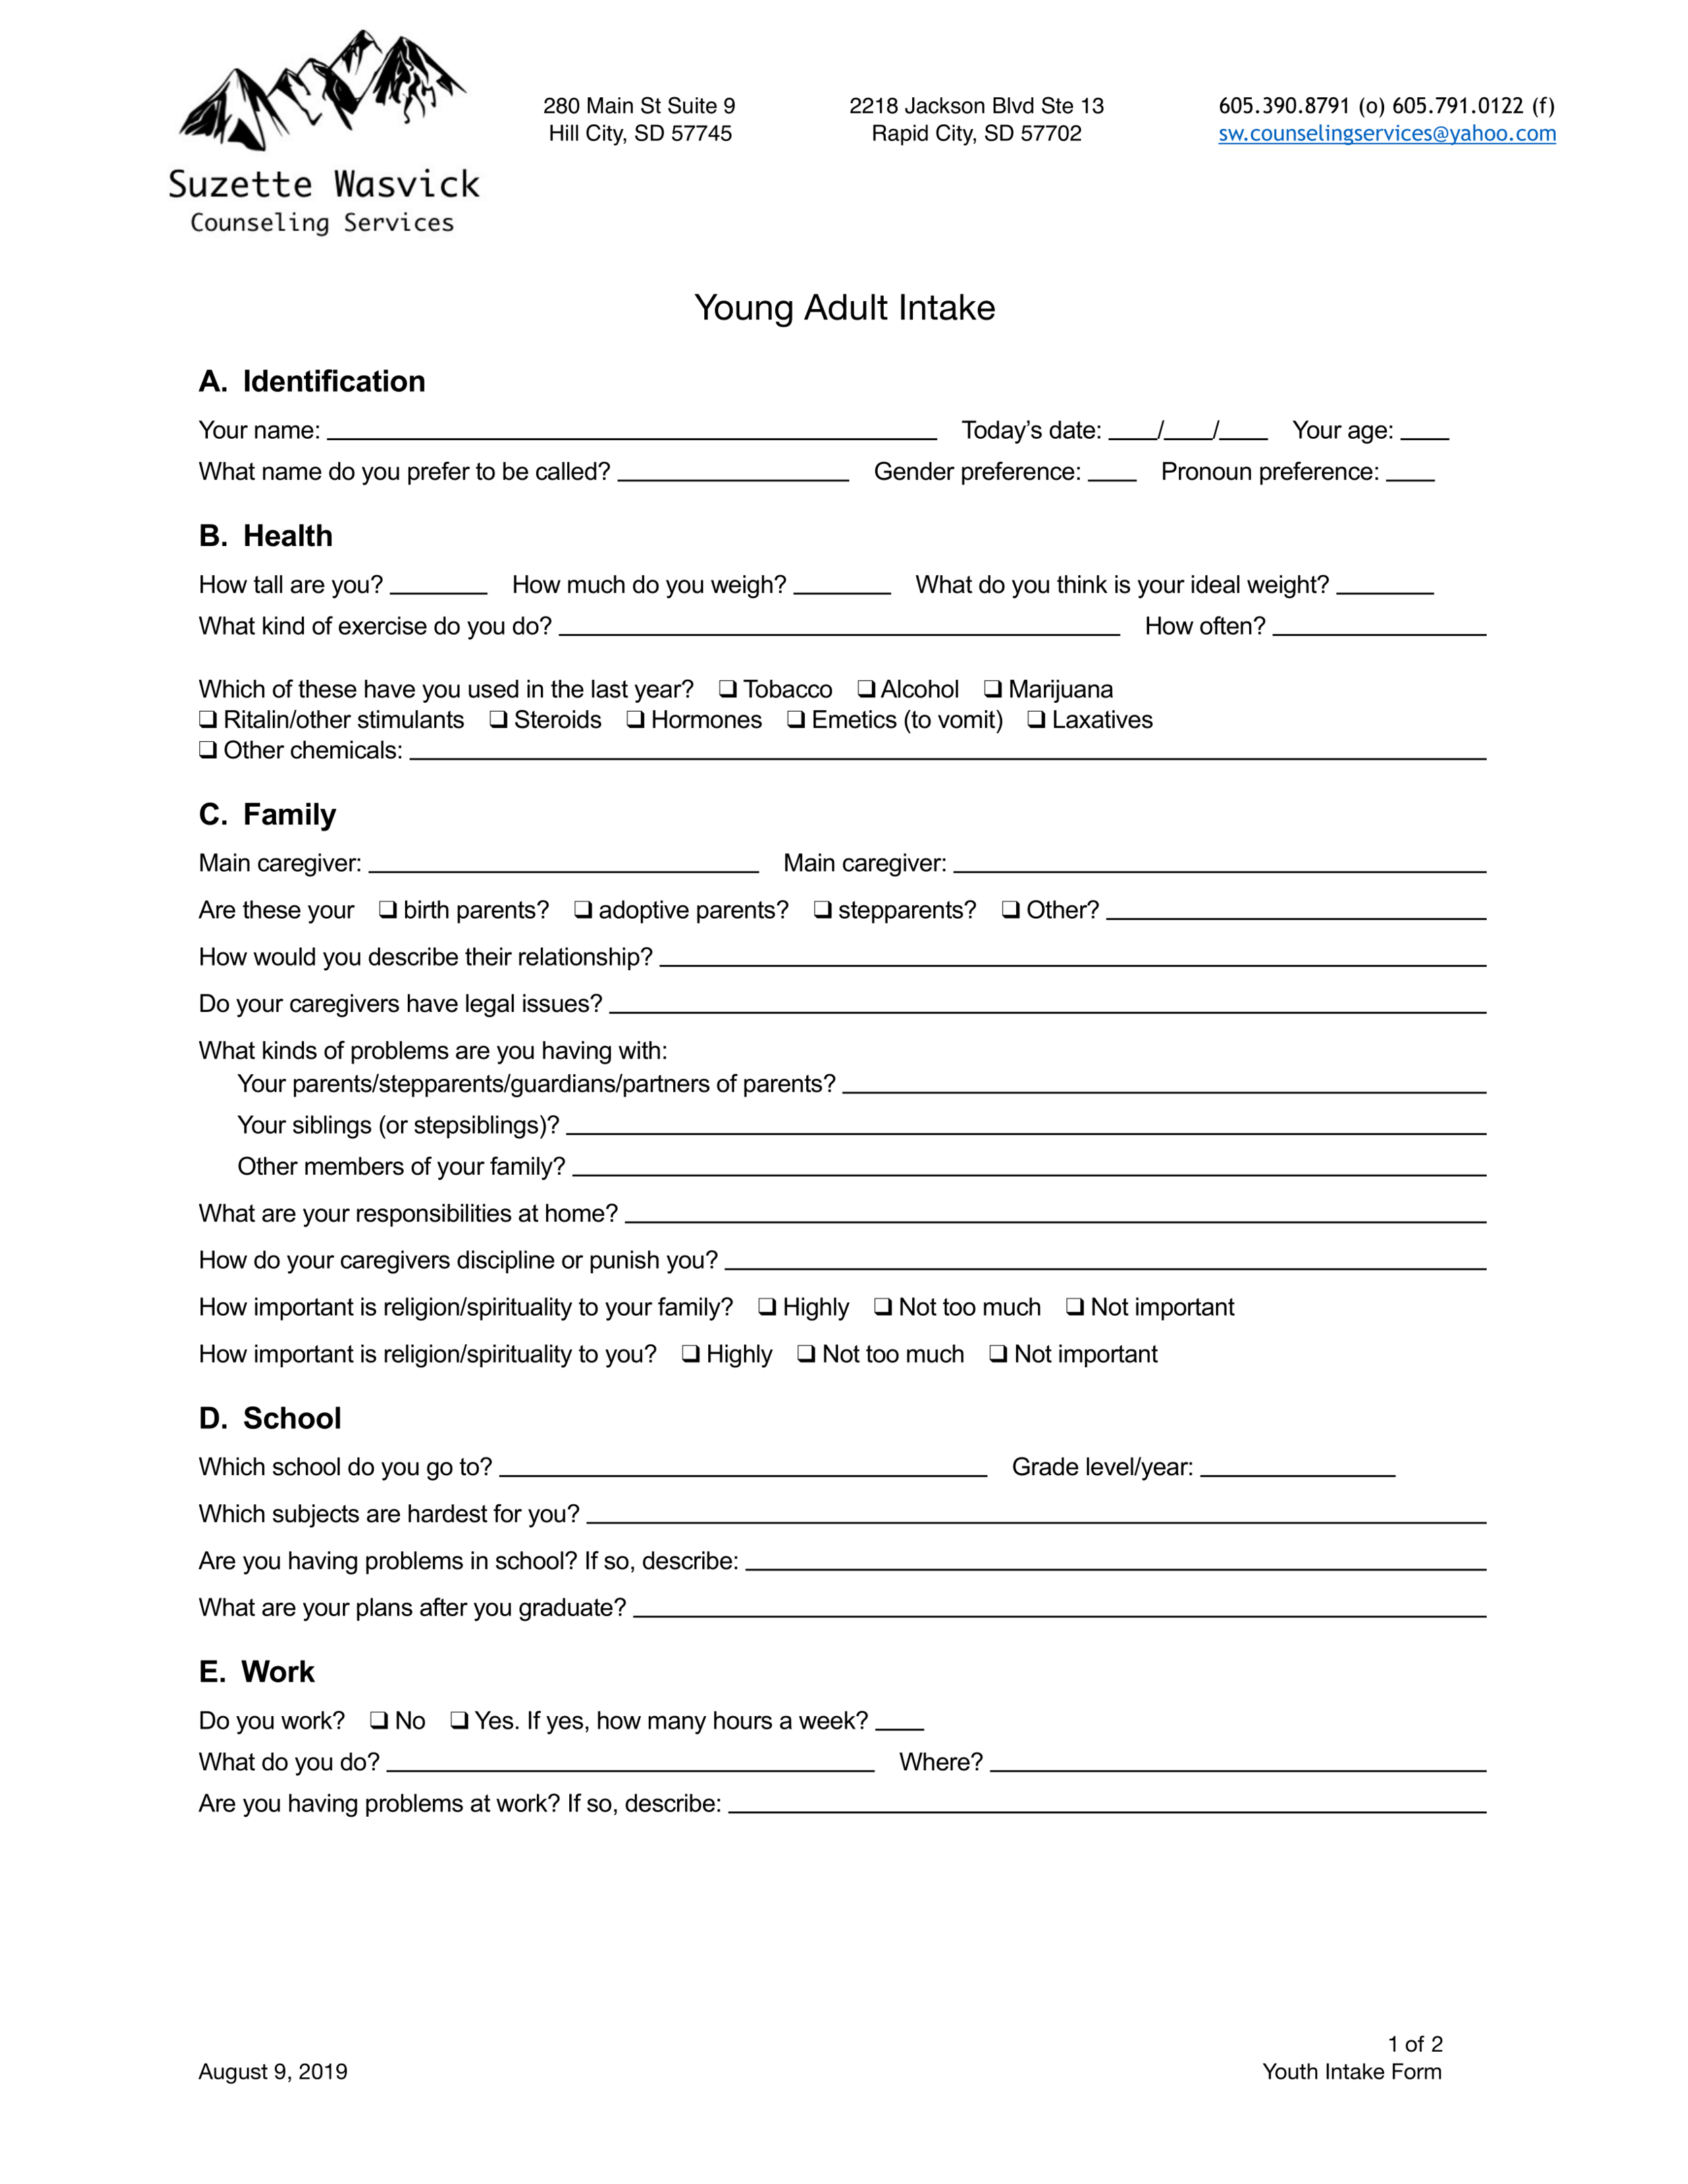 Young Adult Intake Form